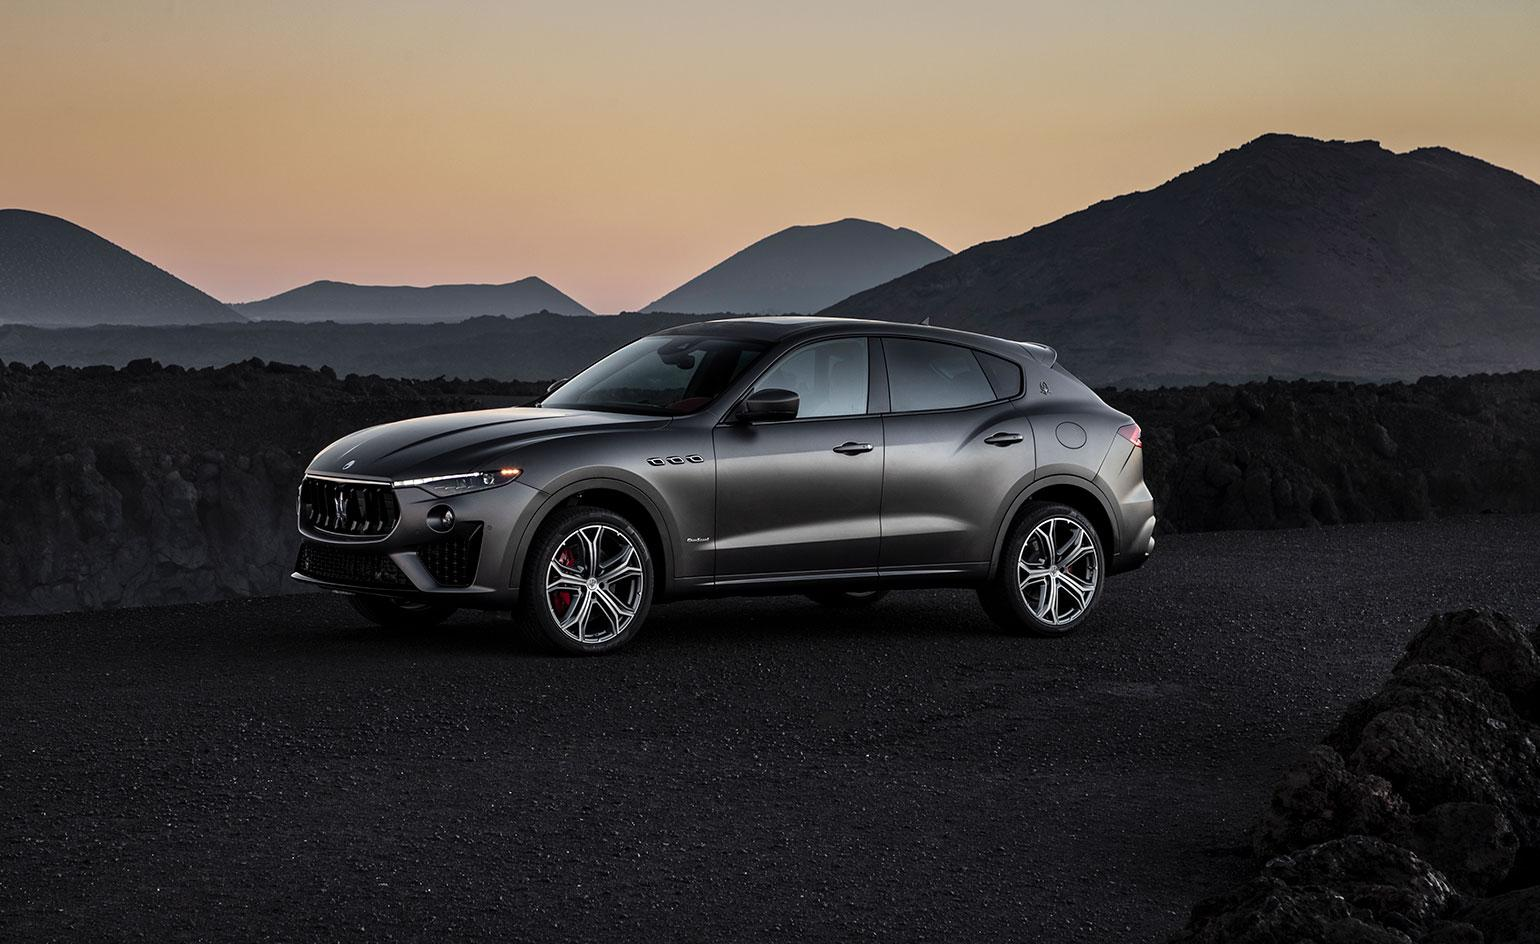 Maserati Levante Review And Test Drive 2019 Wallpaper